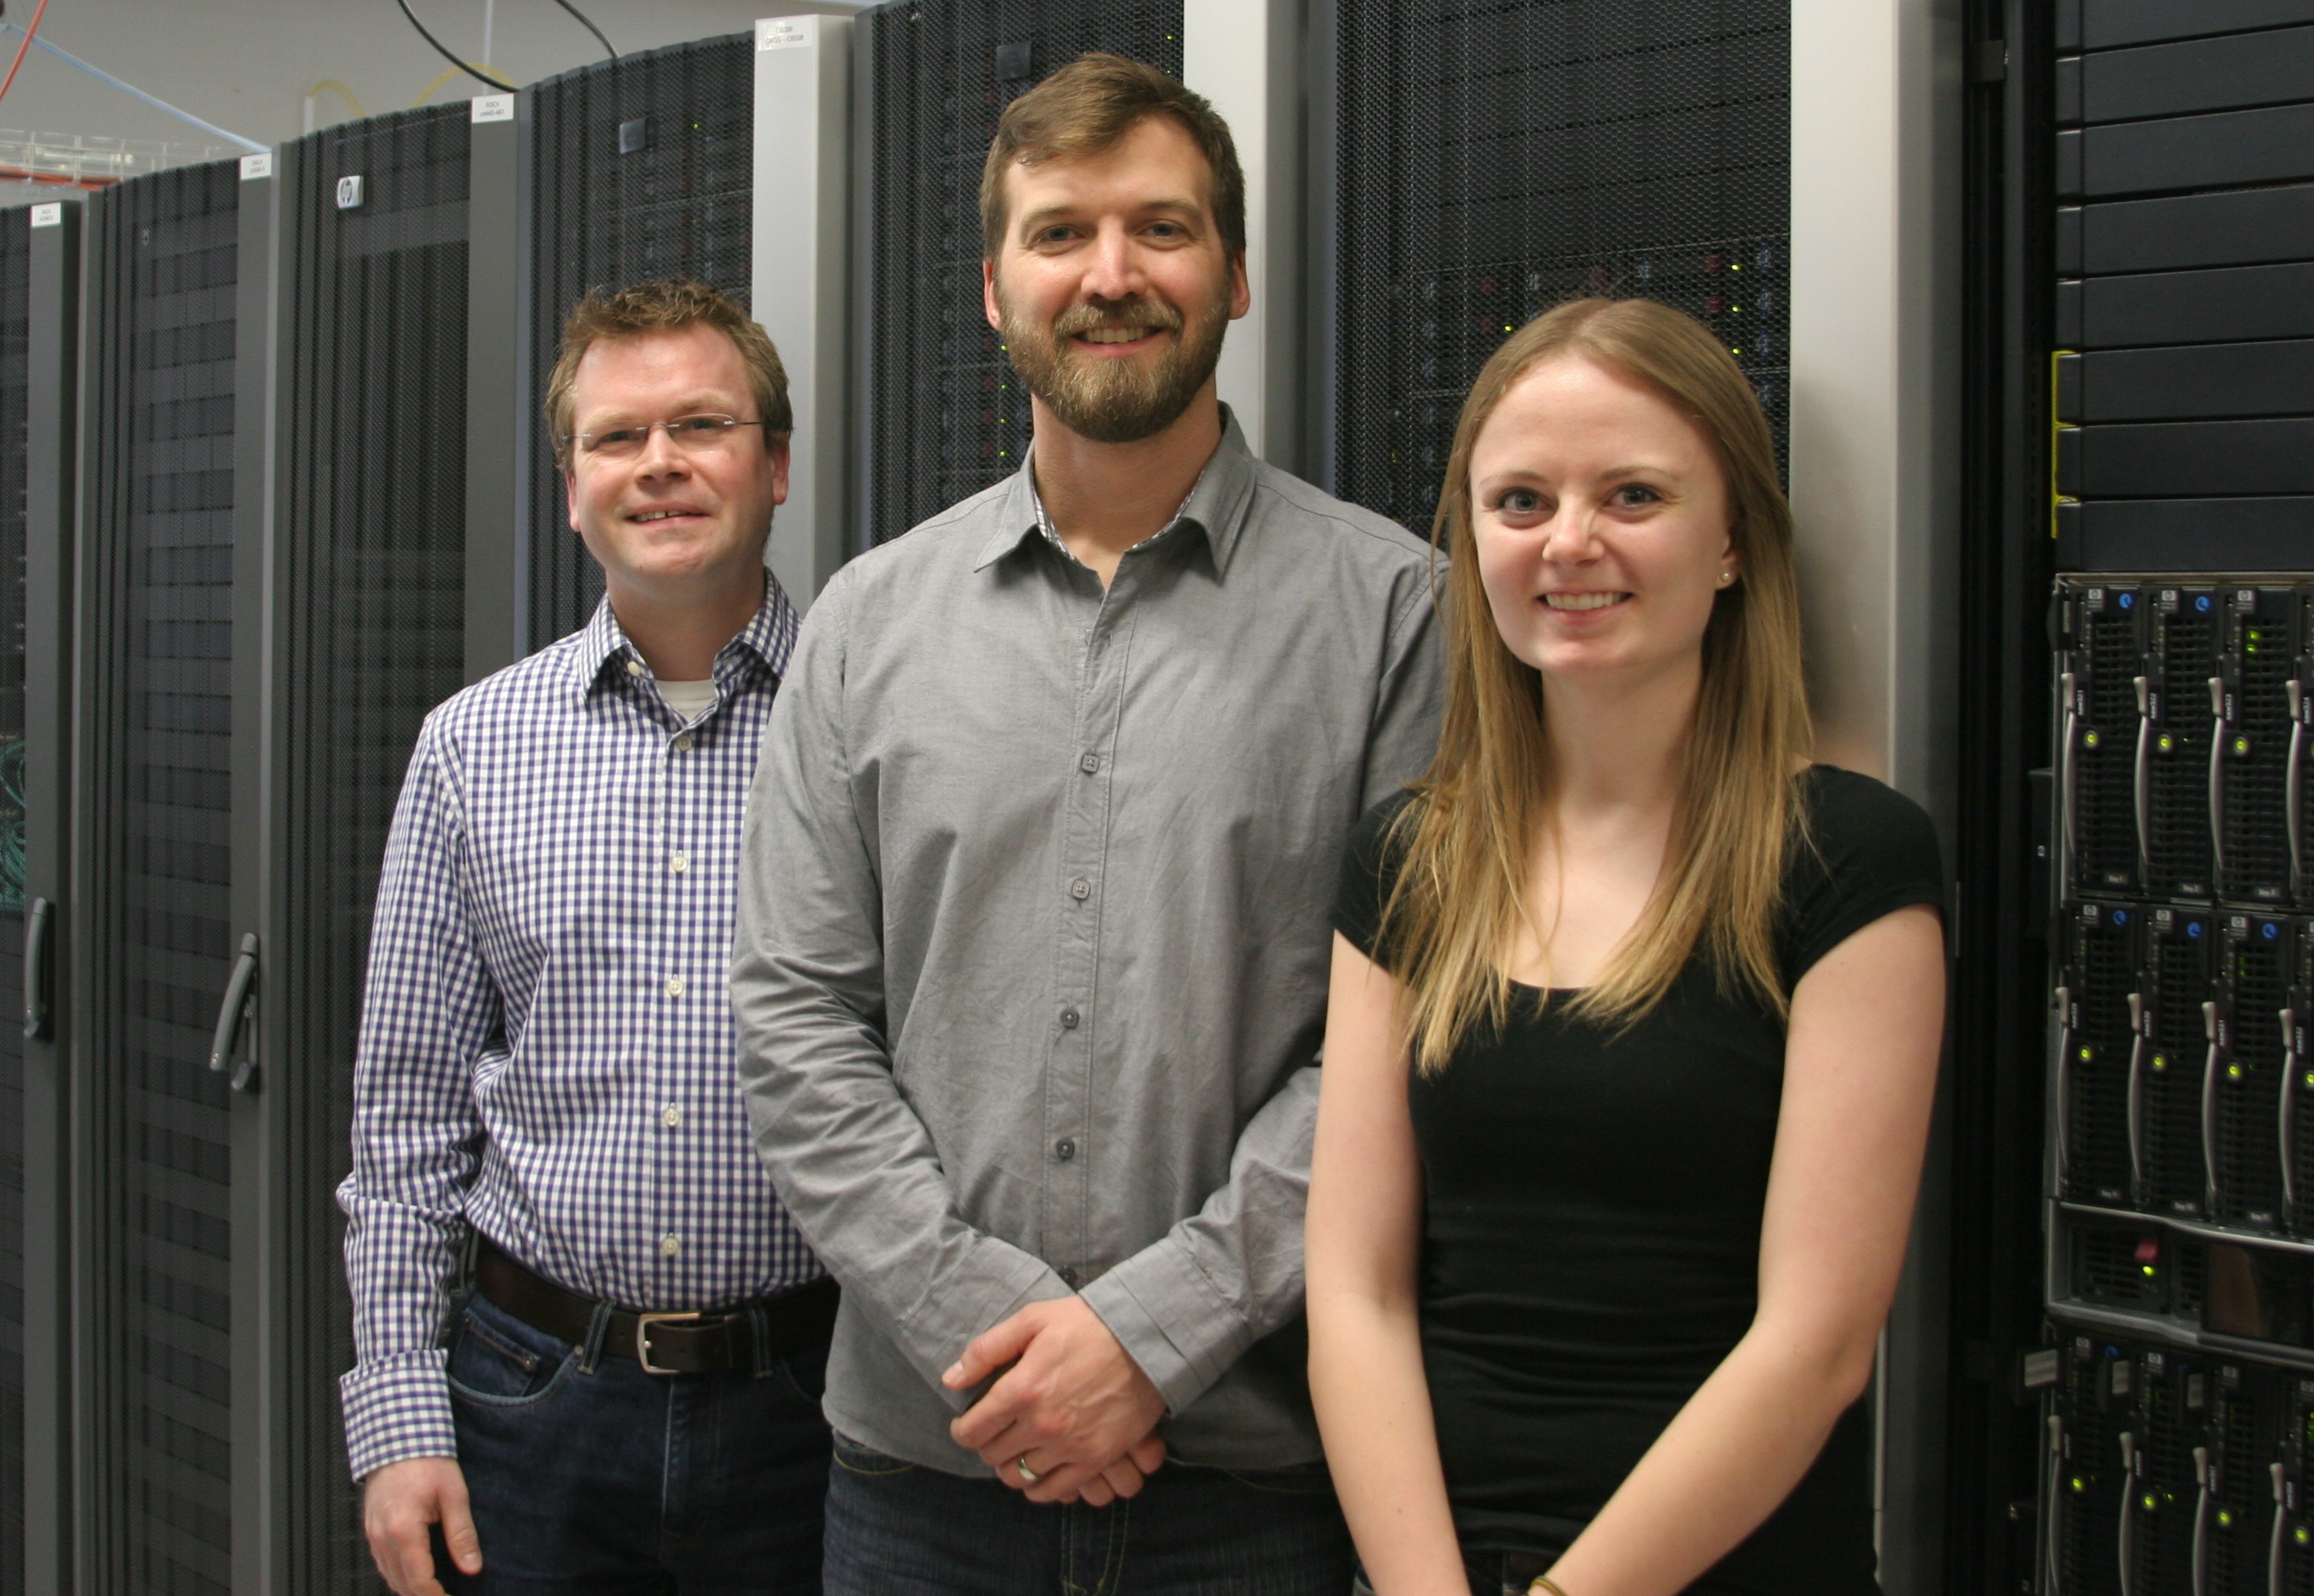 Waterloo Physics and Astronomy Prof. David Hawthorn, Prof. Roger Melko, and doctoral student Lauren Hayward